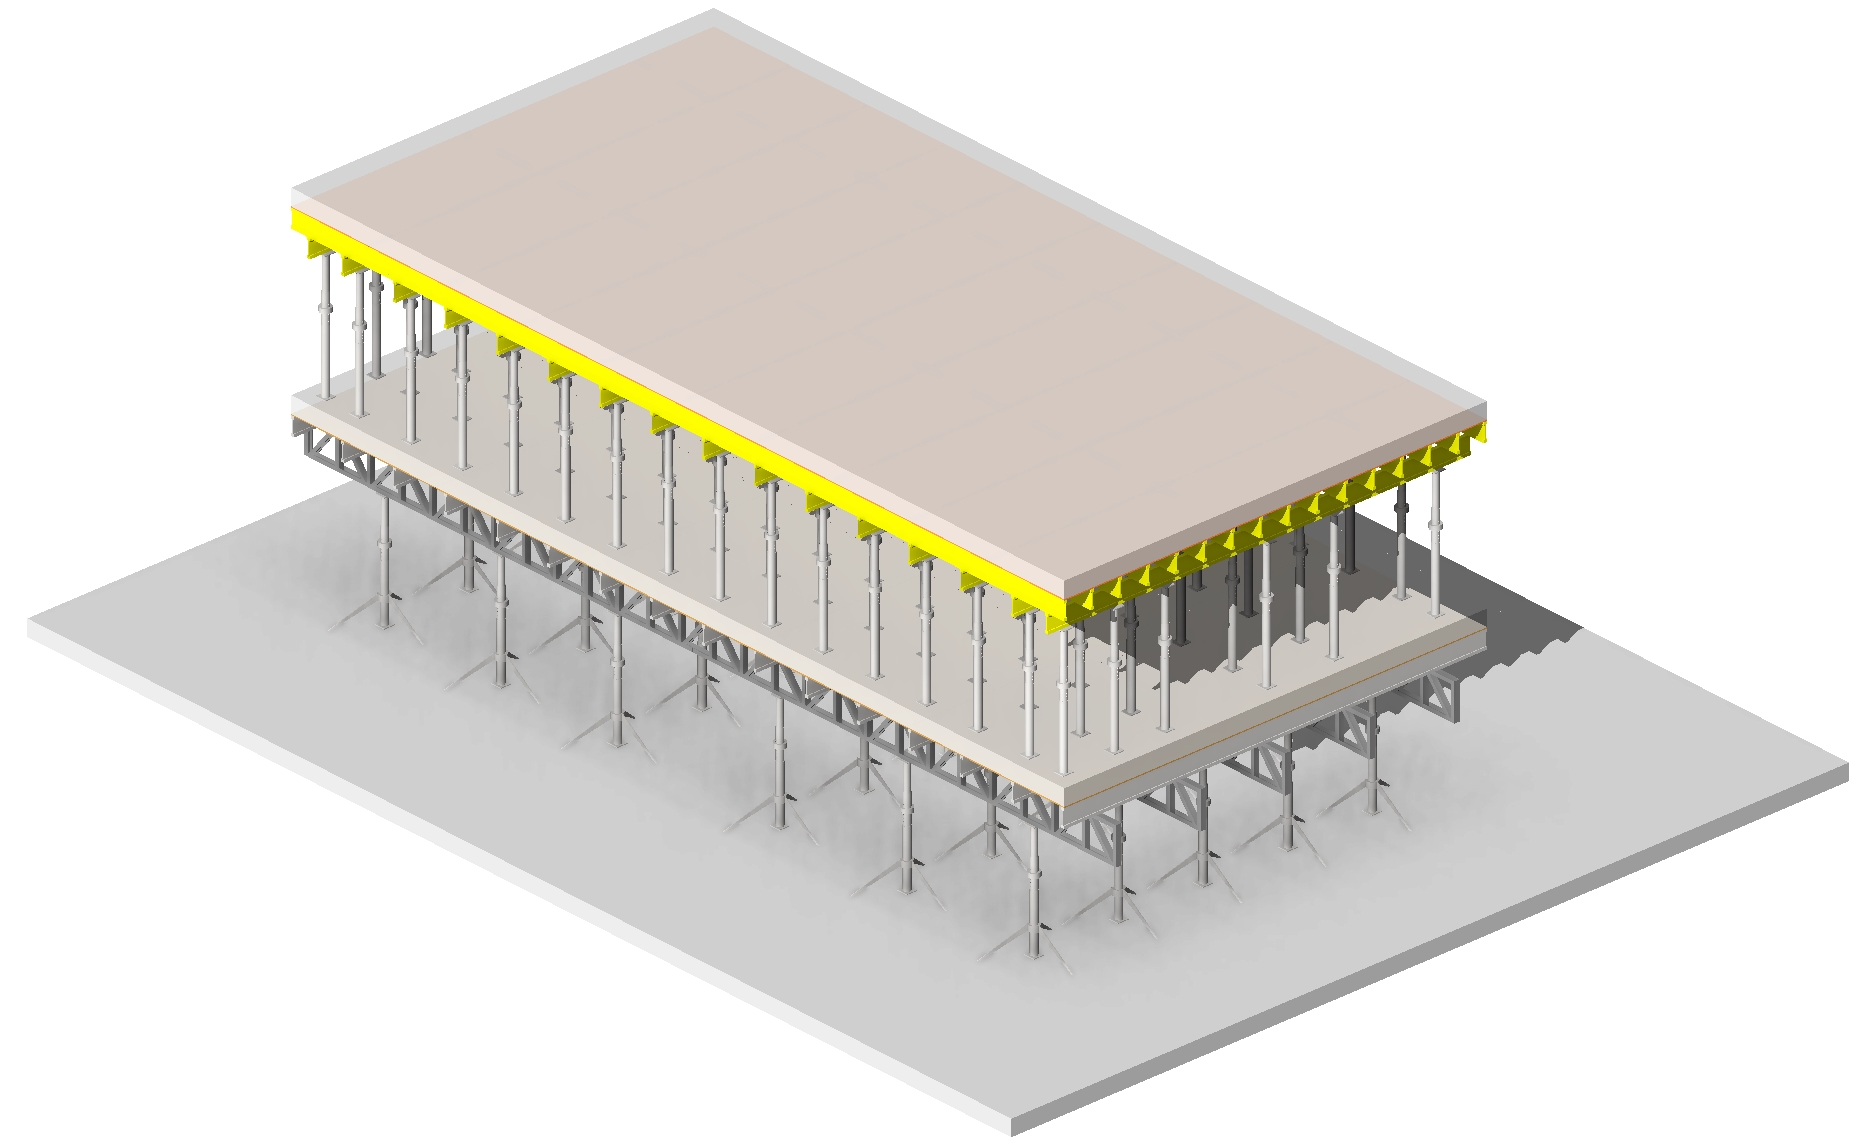 Model formwork for concrete slabs in Autodesk Revit using AGACAD Wood & Metal Framing BIM software